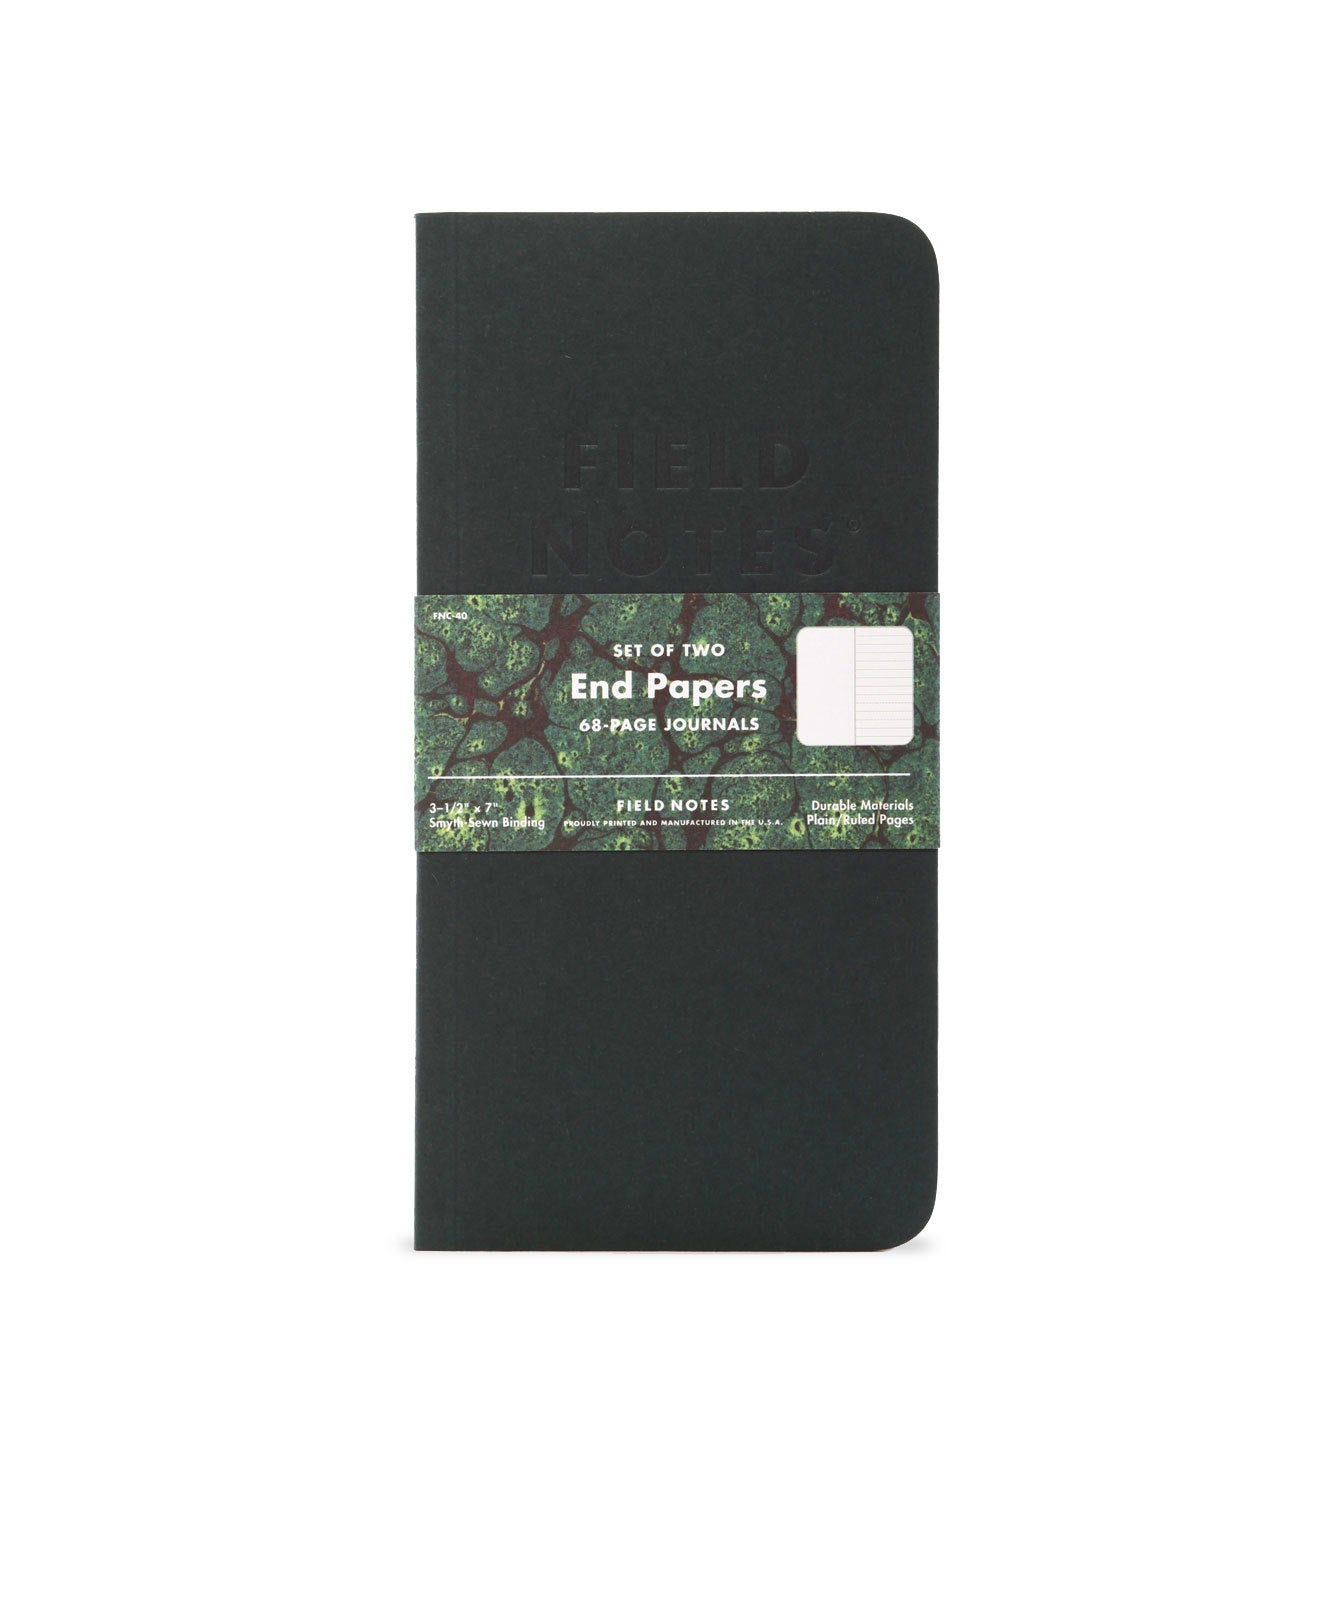 End Papers 2-Pack 68pages